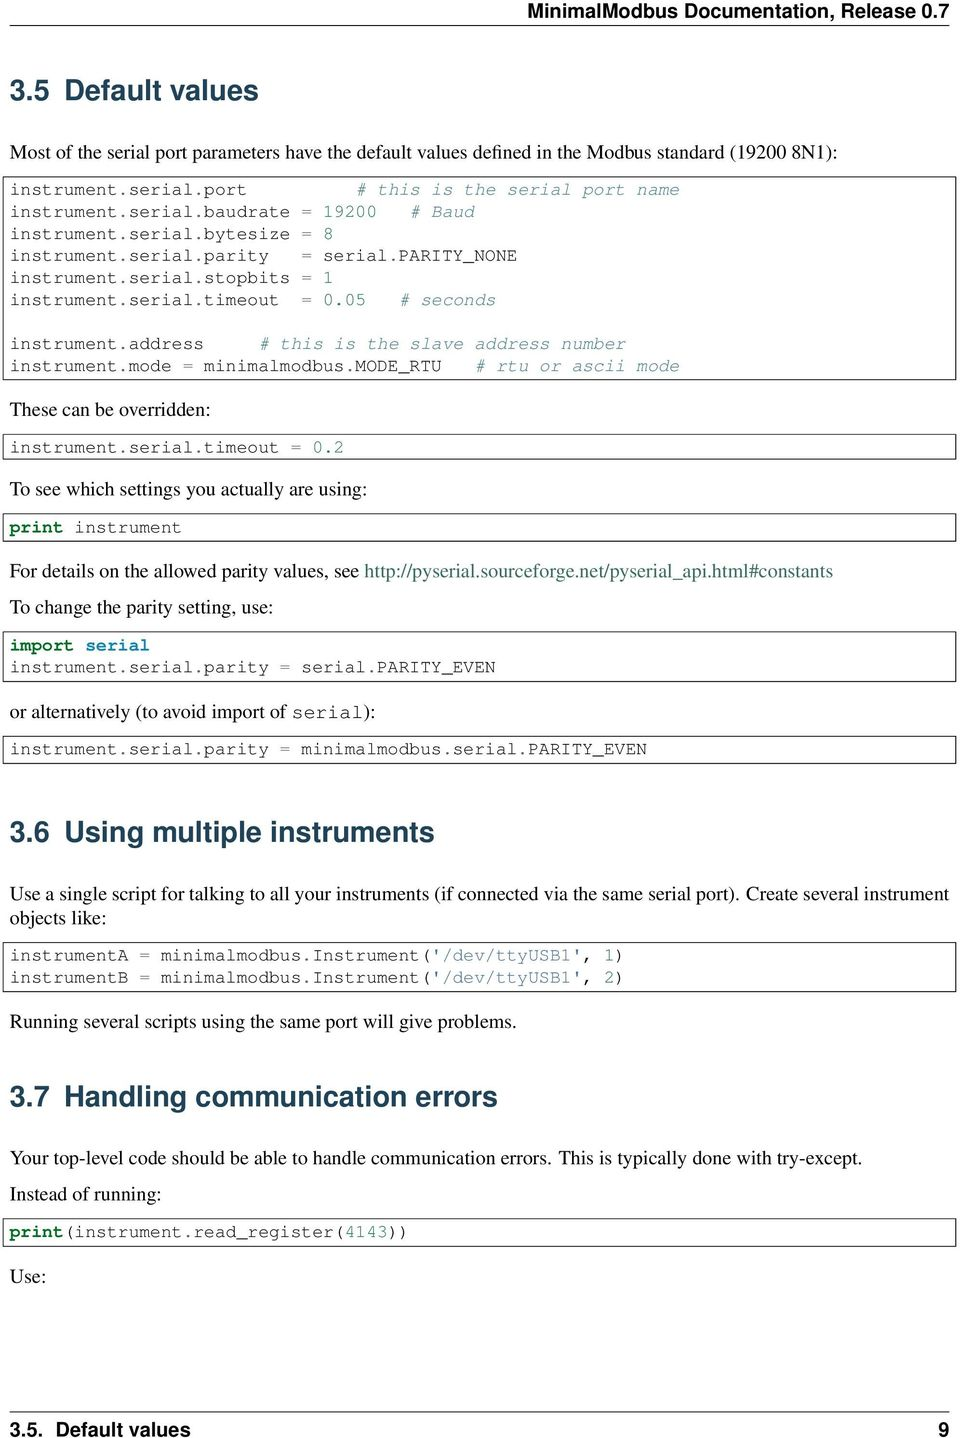 MinimalModbus Documentation - PDF